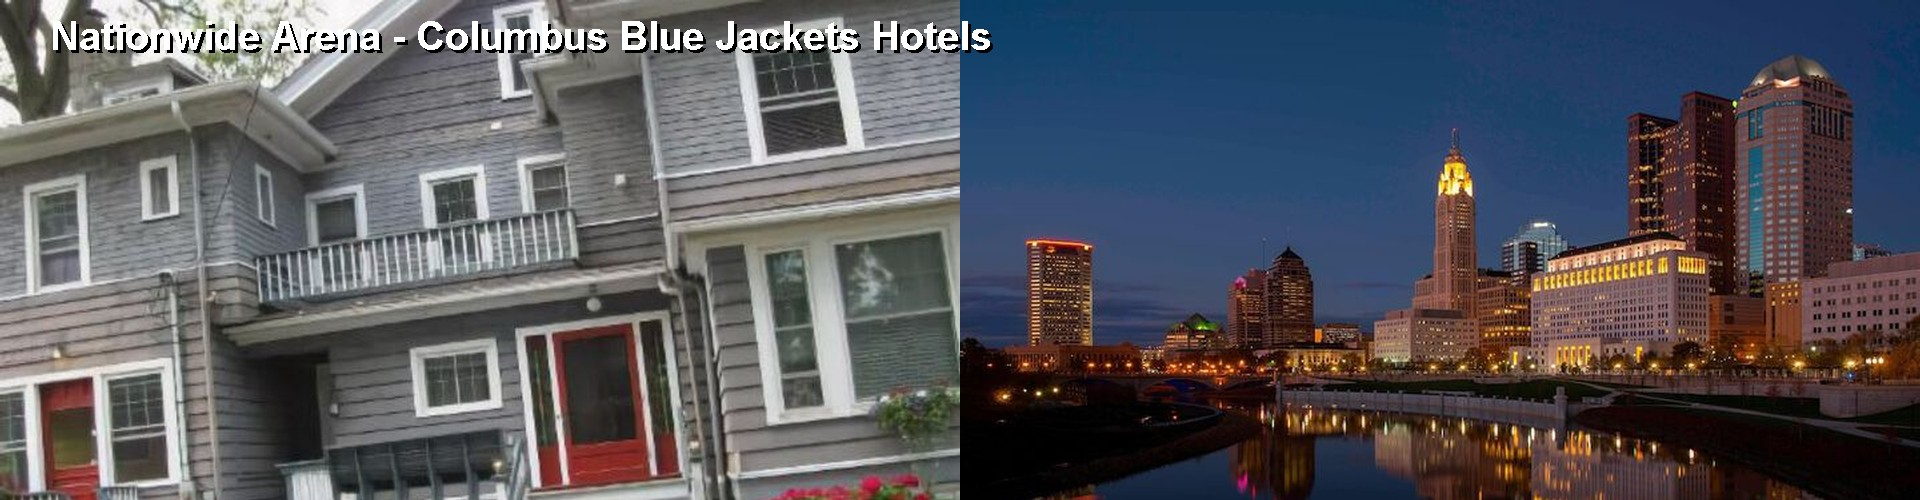 $50+ Hotels Near Nationwide Arena Columbus Blue Jackets in